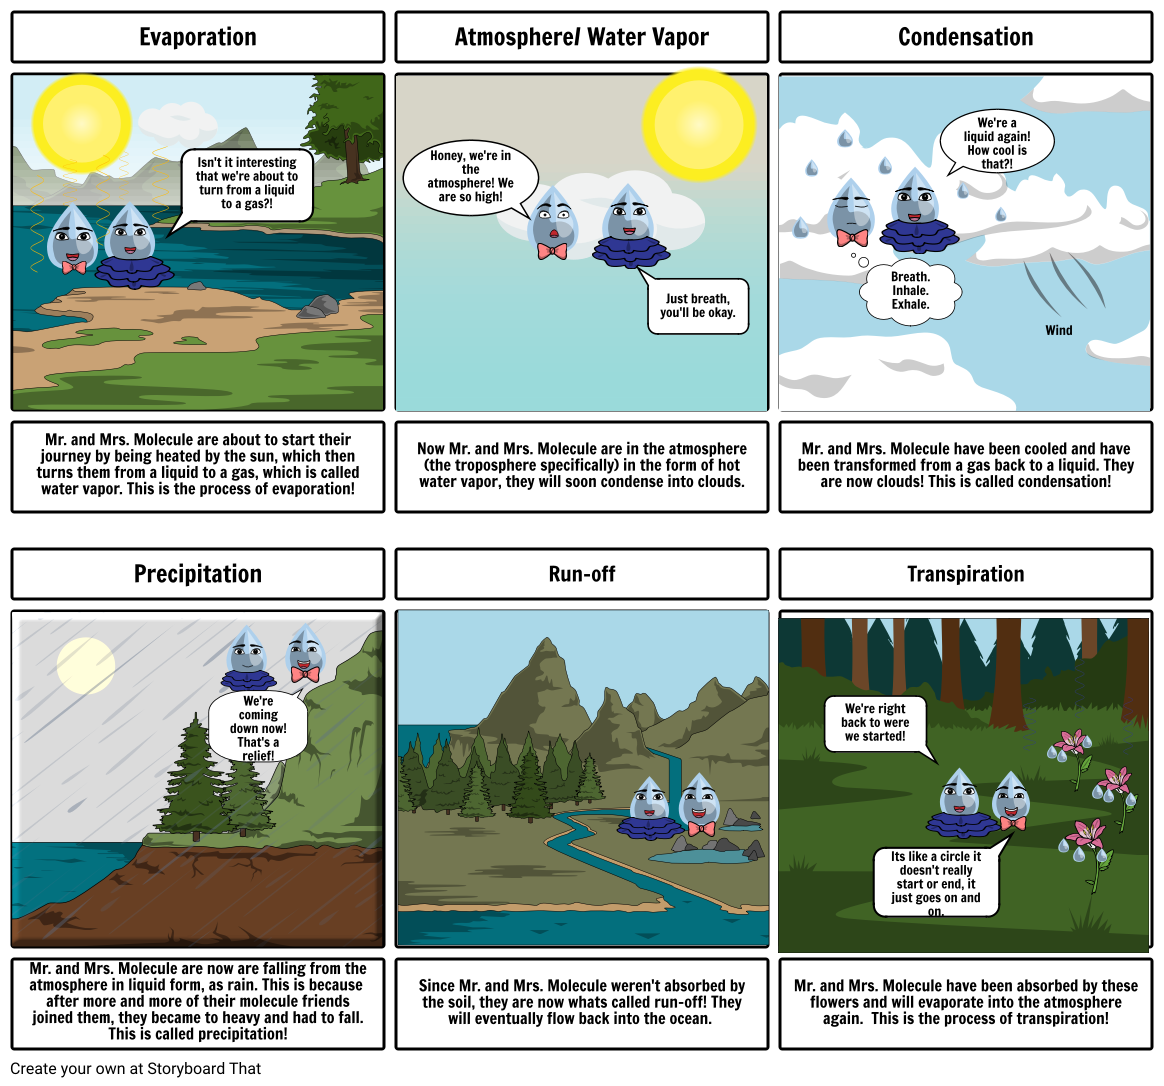 Mr. and Mrs. Molecule's Journey Through the Water Cycle